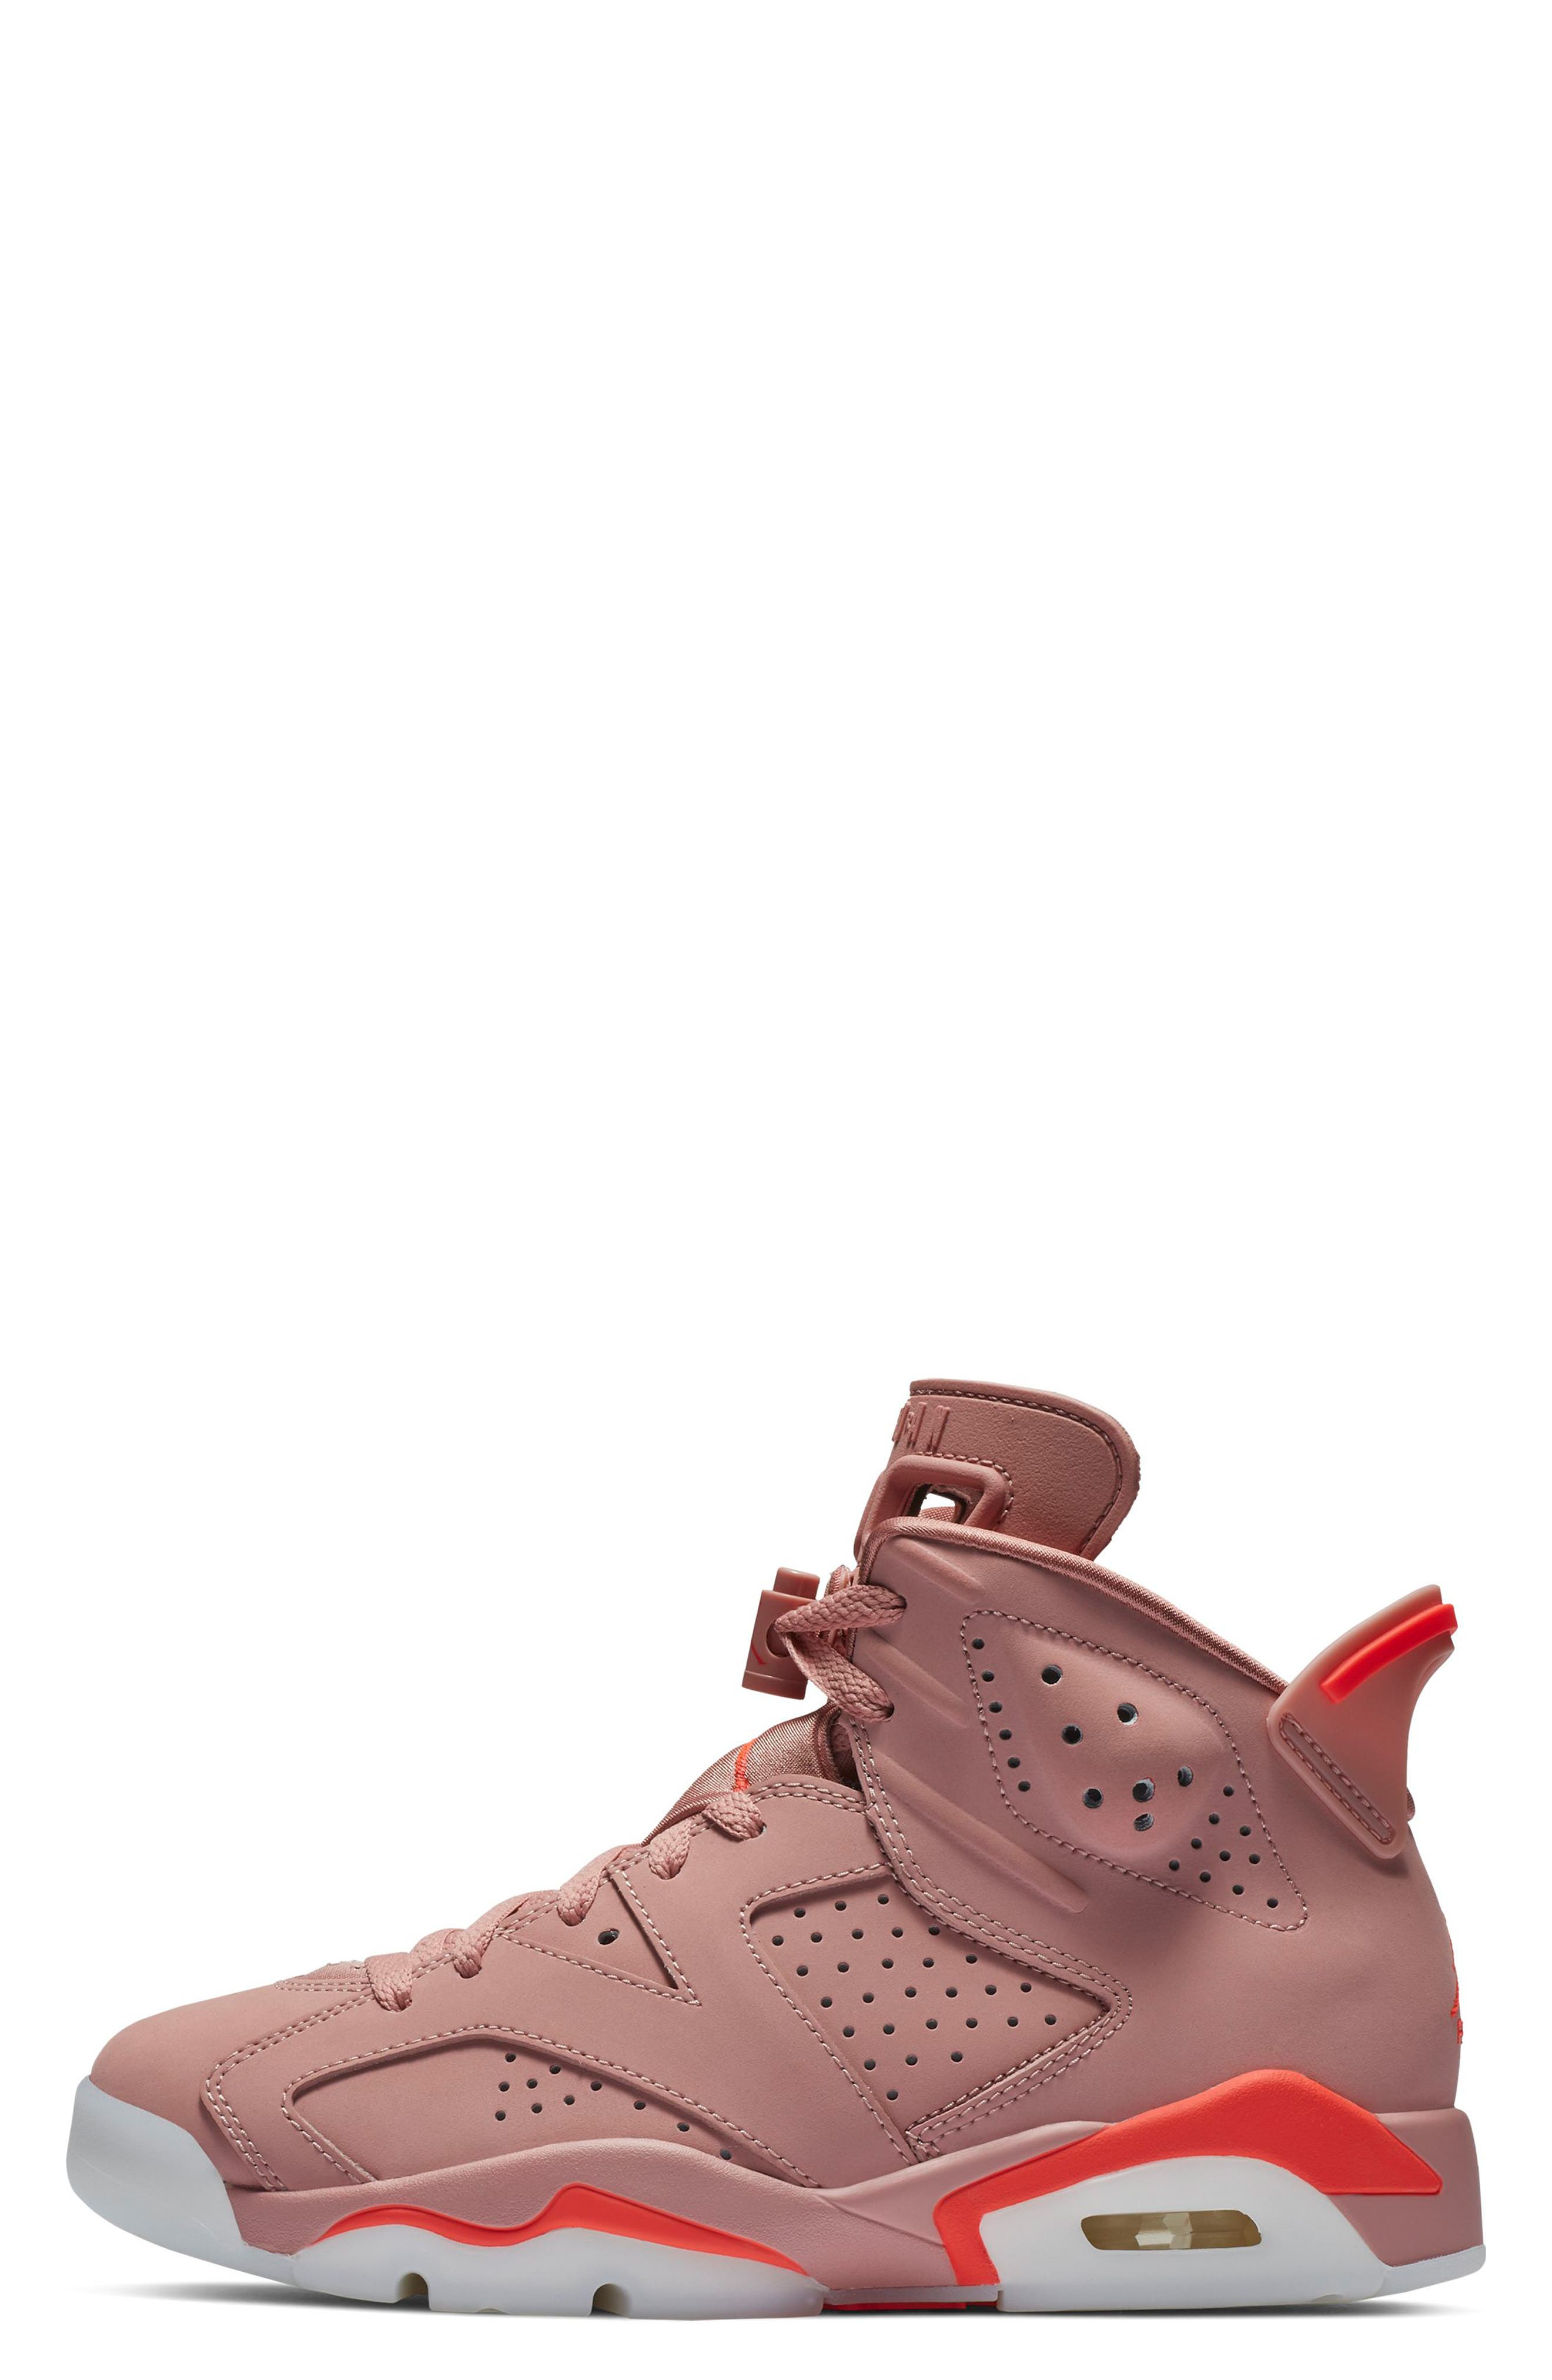 JORDAN, Nike Air Jordan 6 Retro NRG Sneaker, Alternate thumbnail 3, color, 650